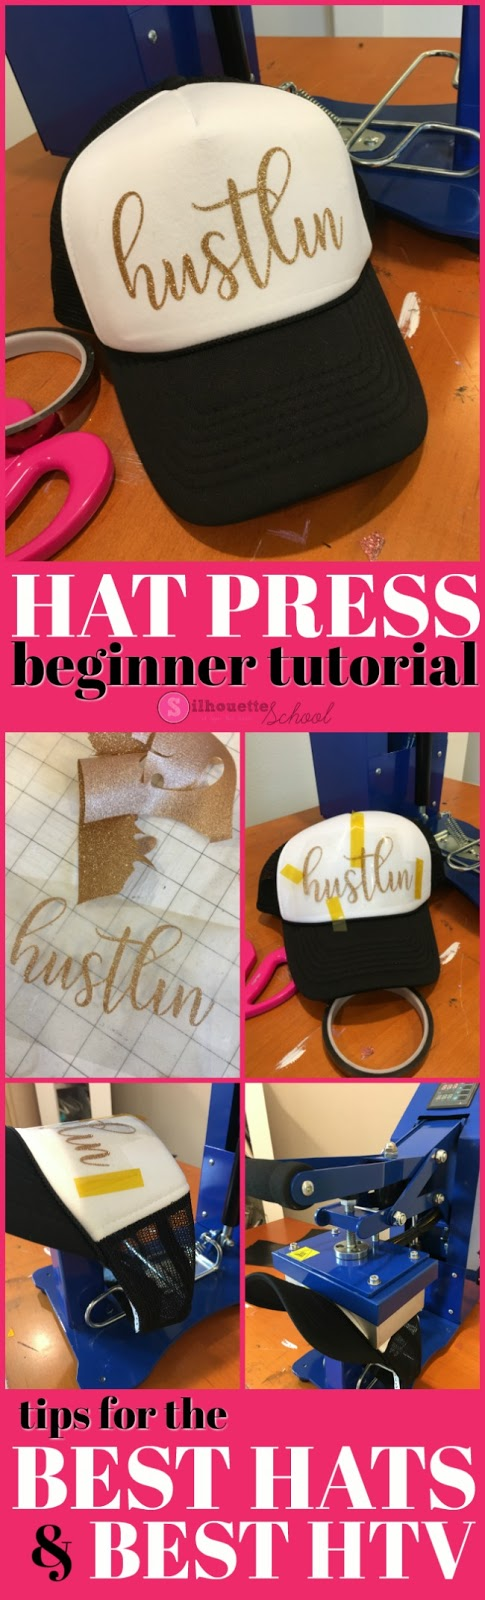 hat press, hat heat press, cap heat press, hat heat press machine, hat press machine, silhouette cameo